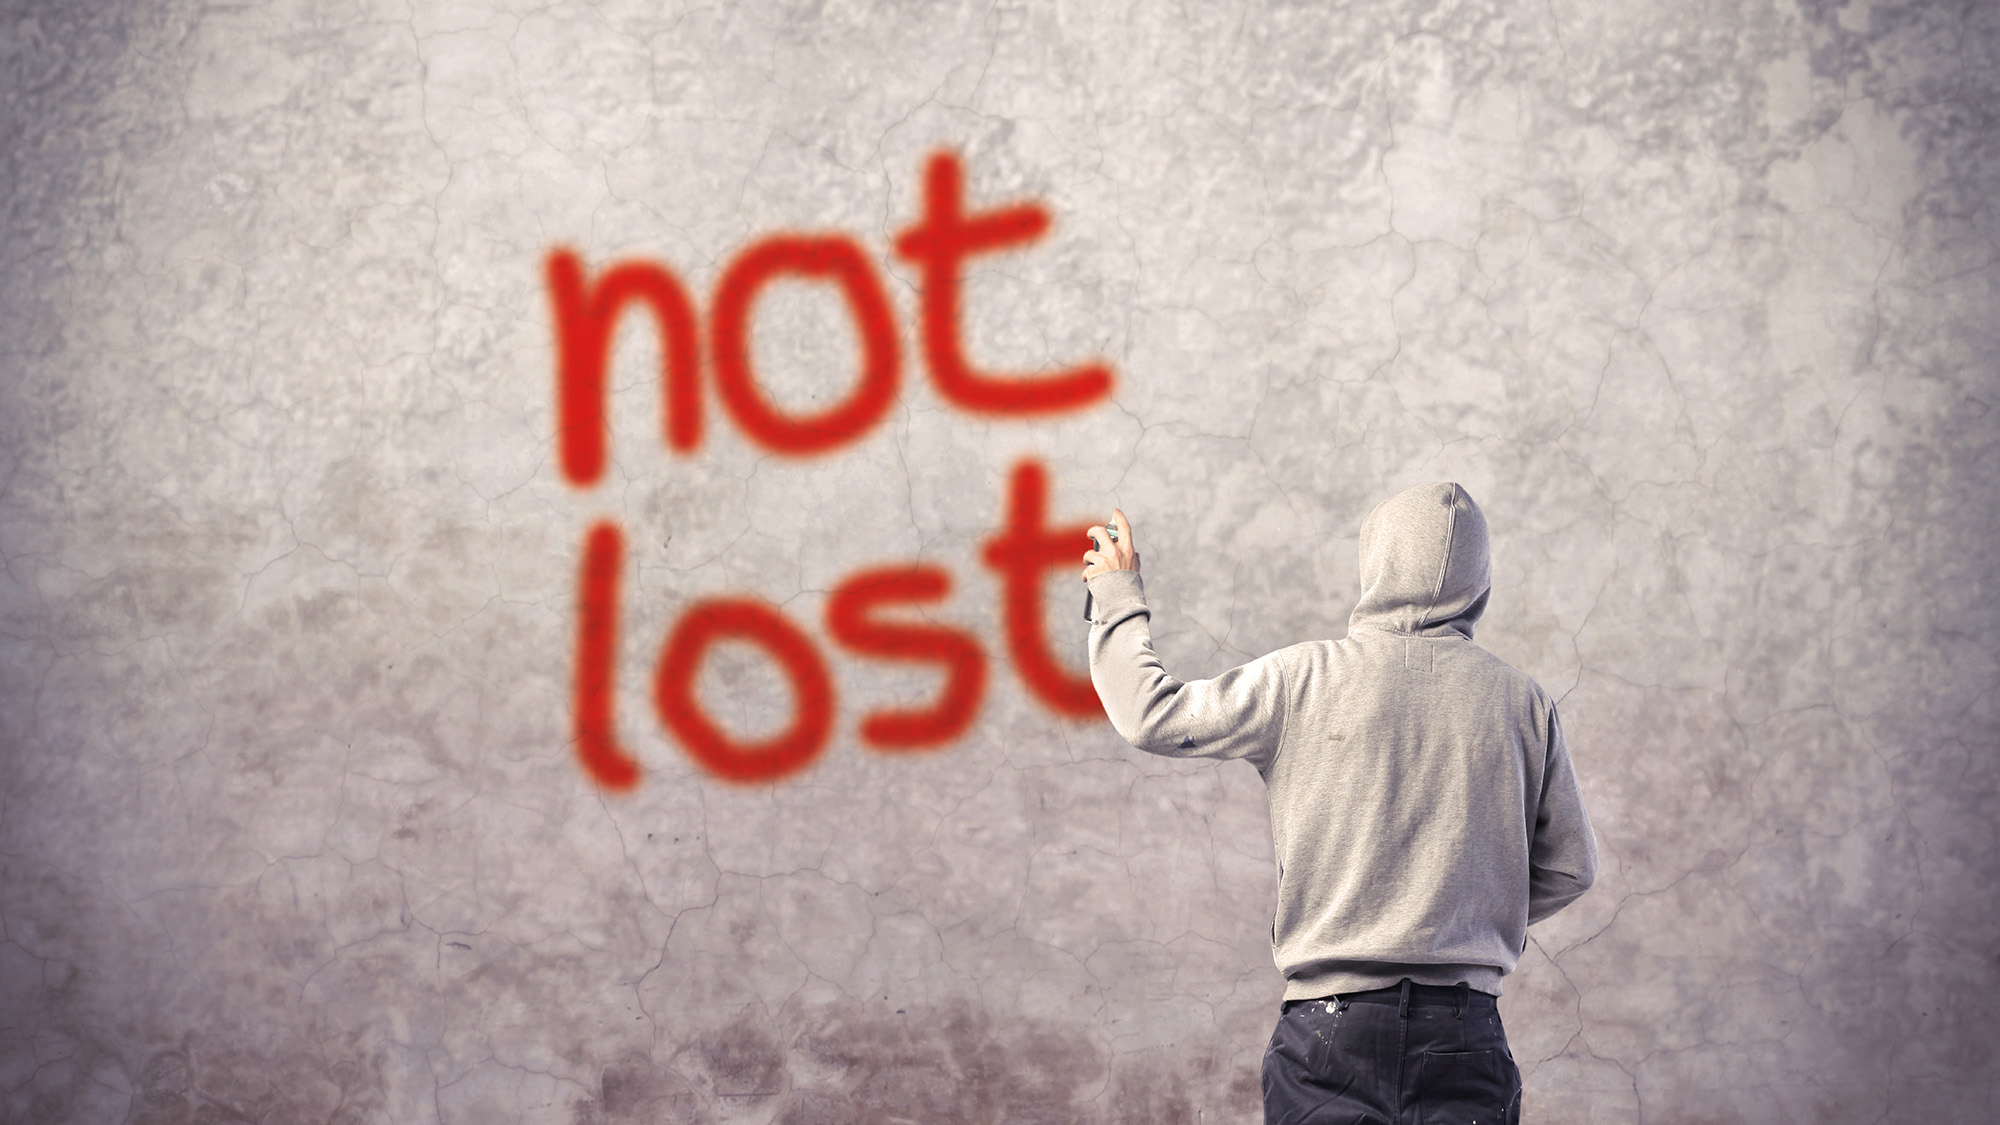 #15: not lost